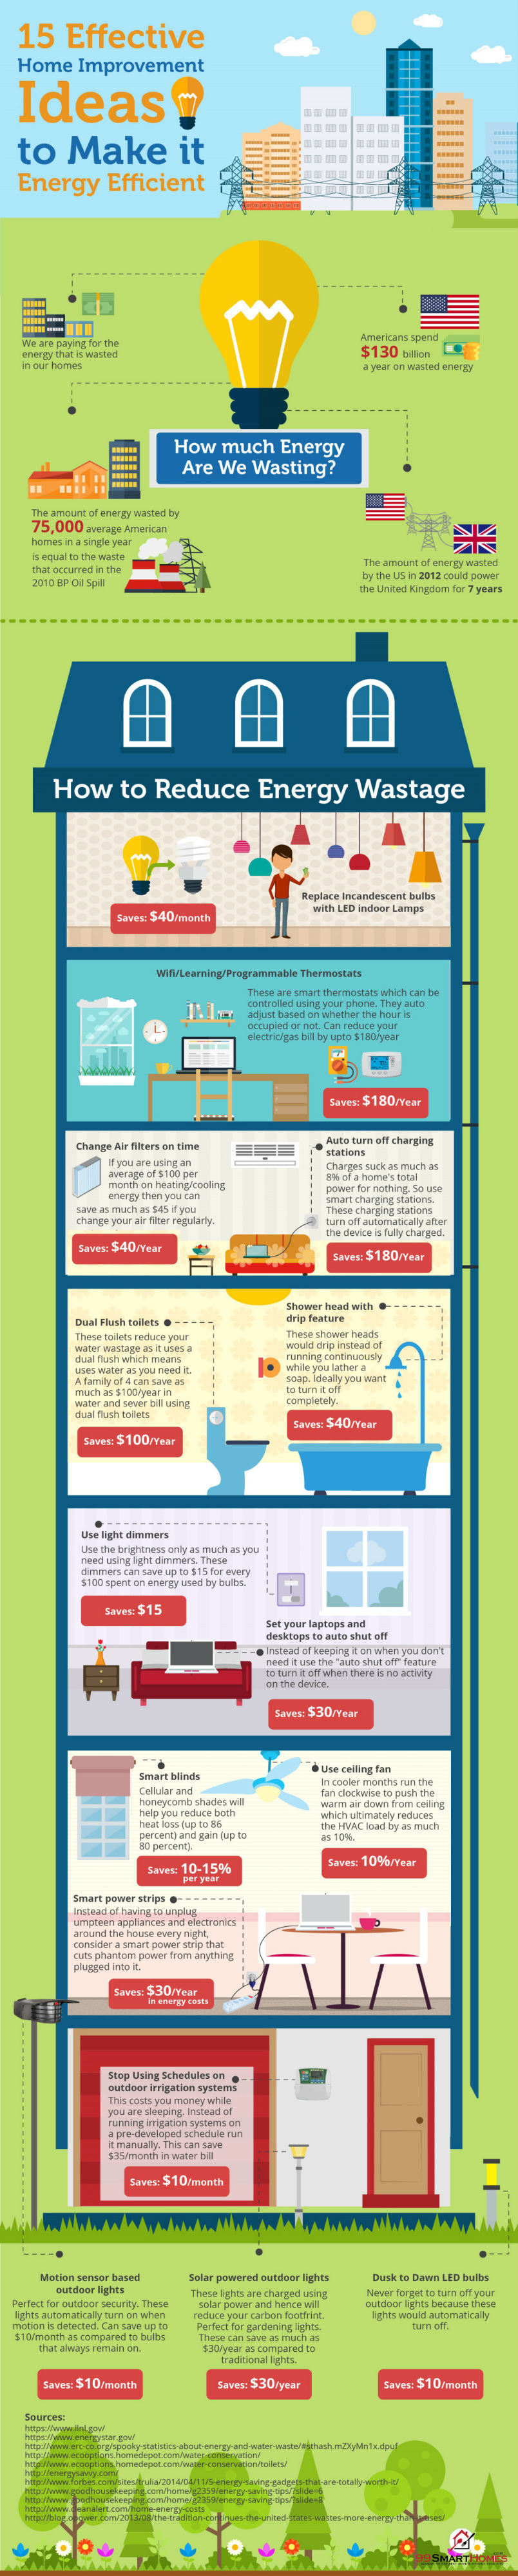 Home Improvement Ideas for Energy Efficiency [Infographic]